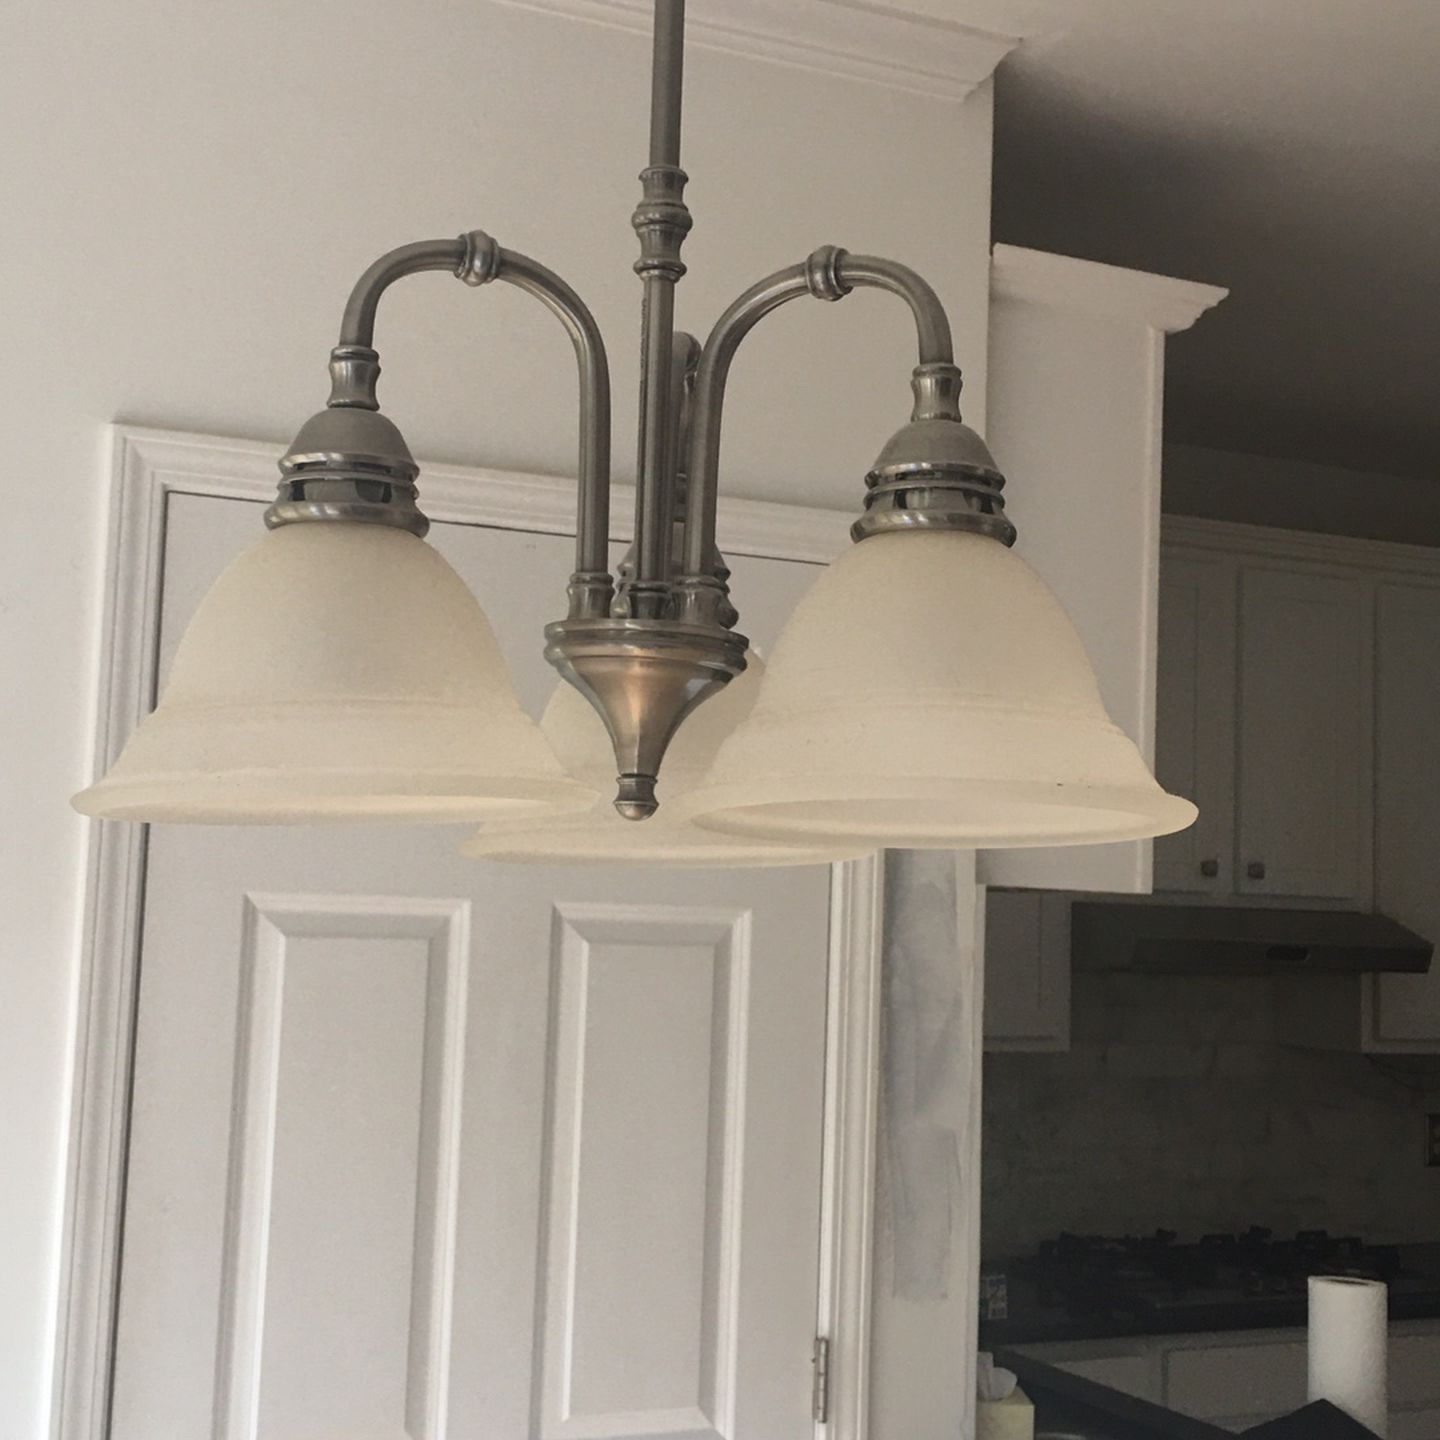 One Nickle and Frosted Glass Light Fixtures